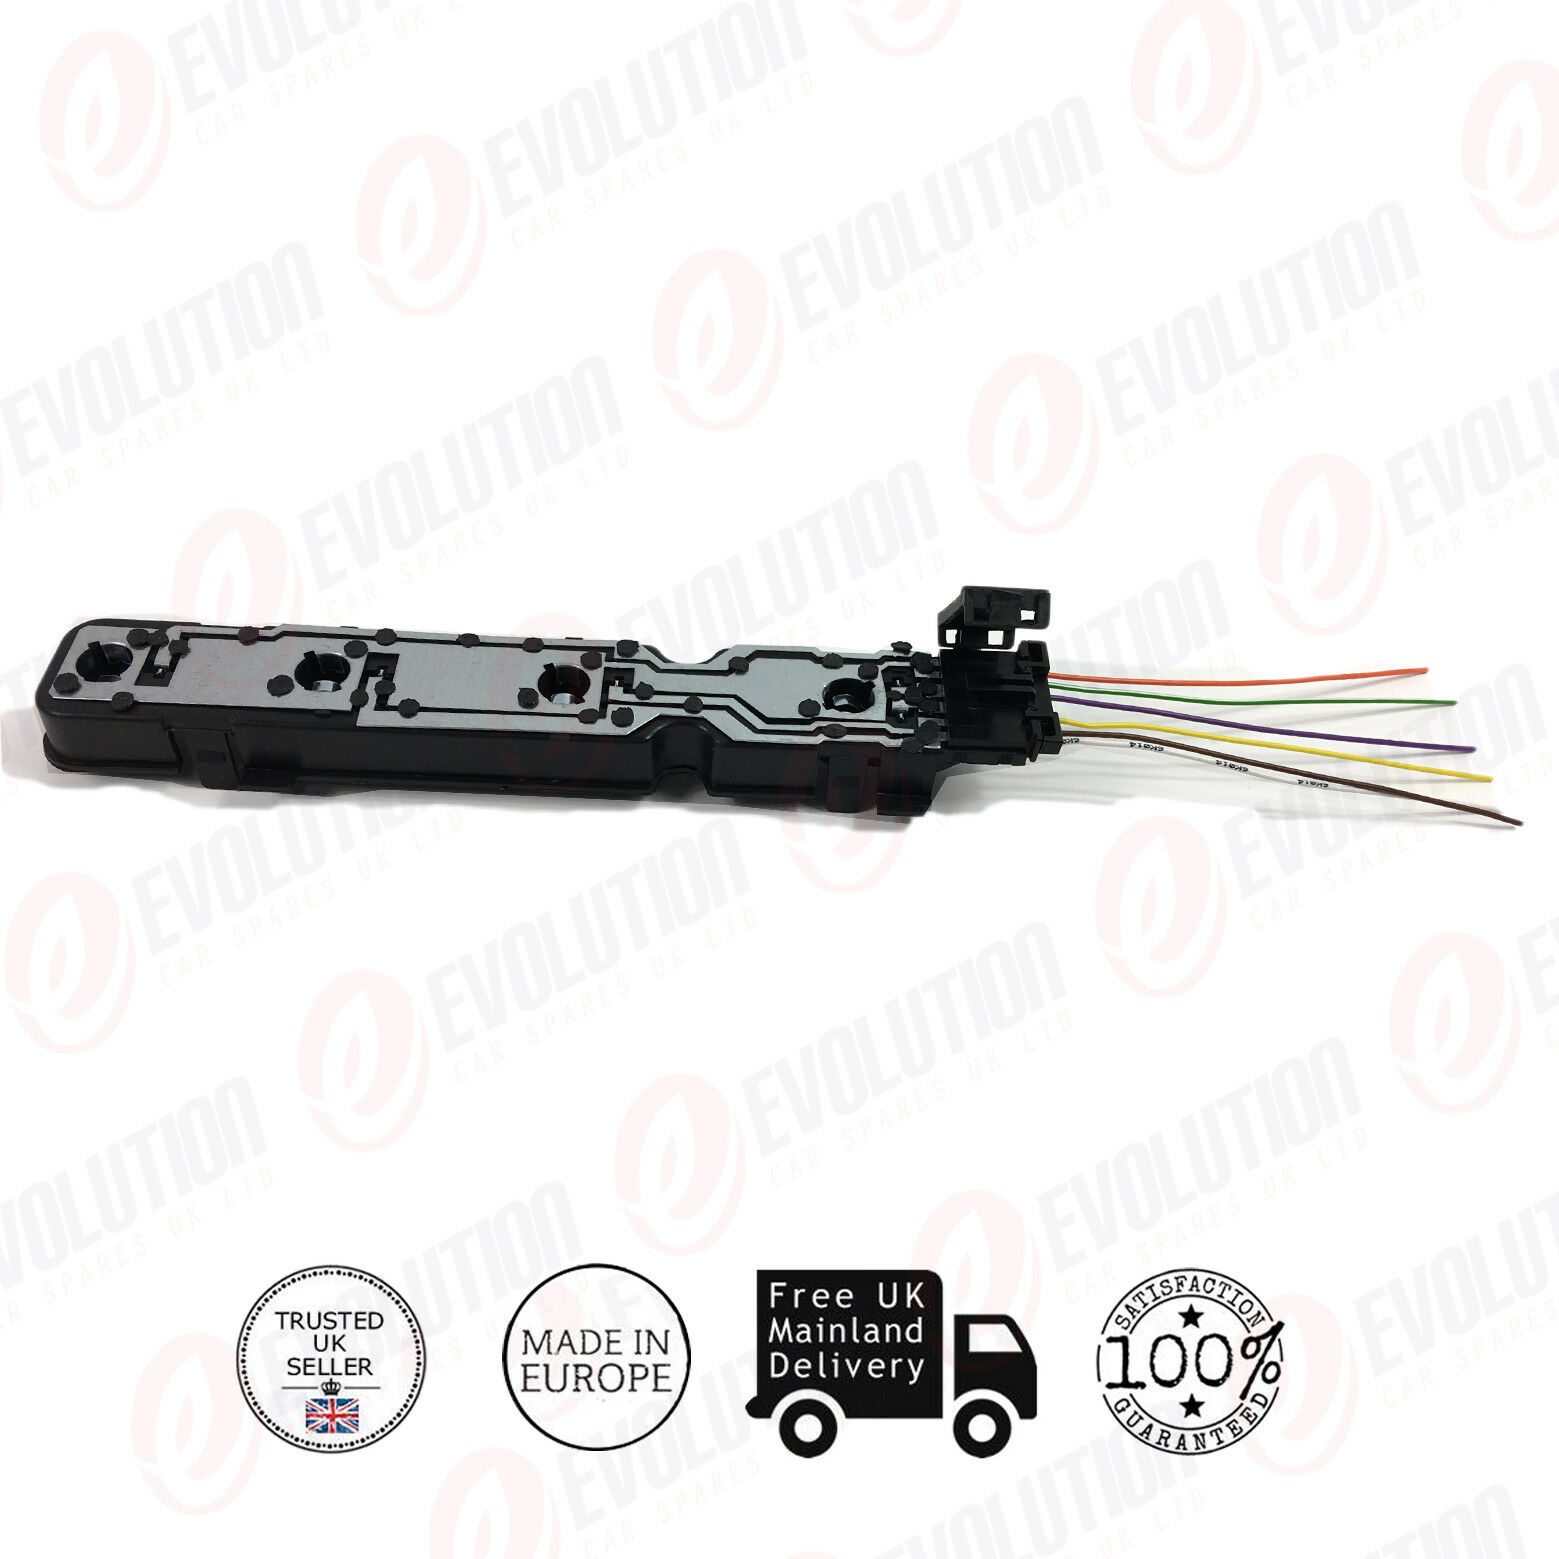 Wiring A Lamp Holder Uk Trusted Diagram Ford Transit Tail Light Mk7 Rear Bulb Loom Connector Diy